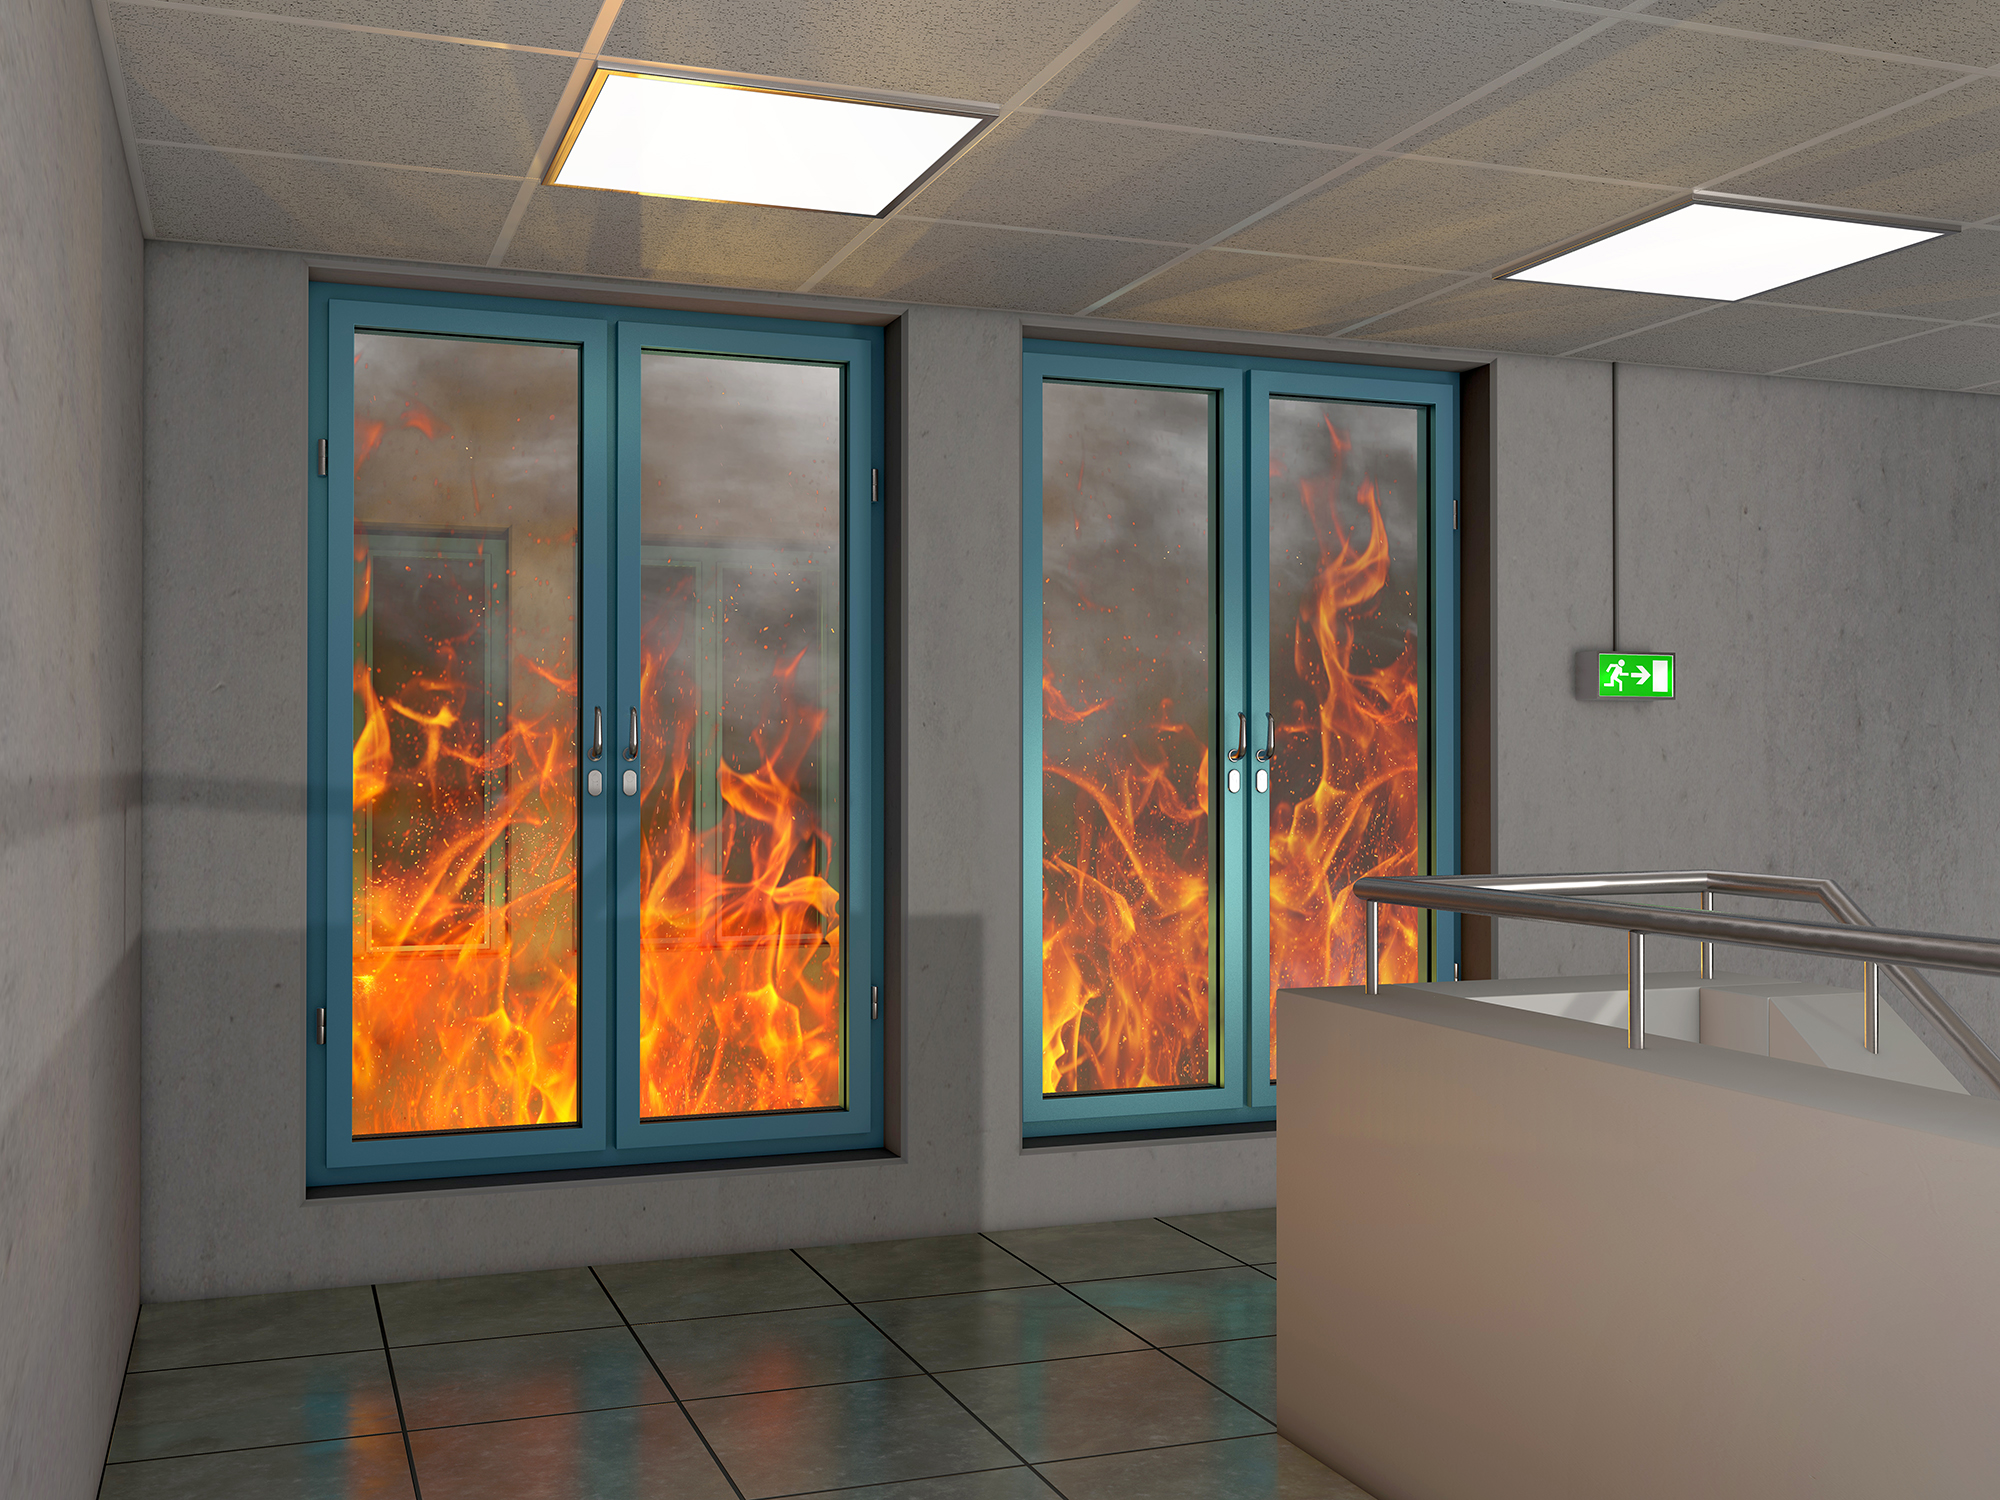 NVQ Passive Fire Protection